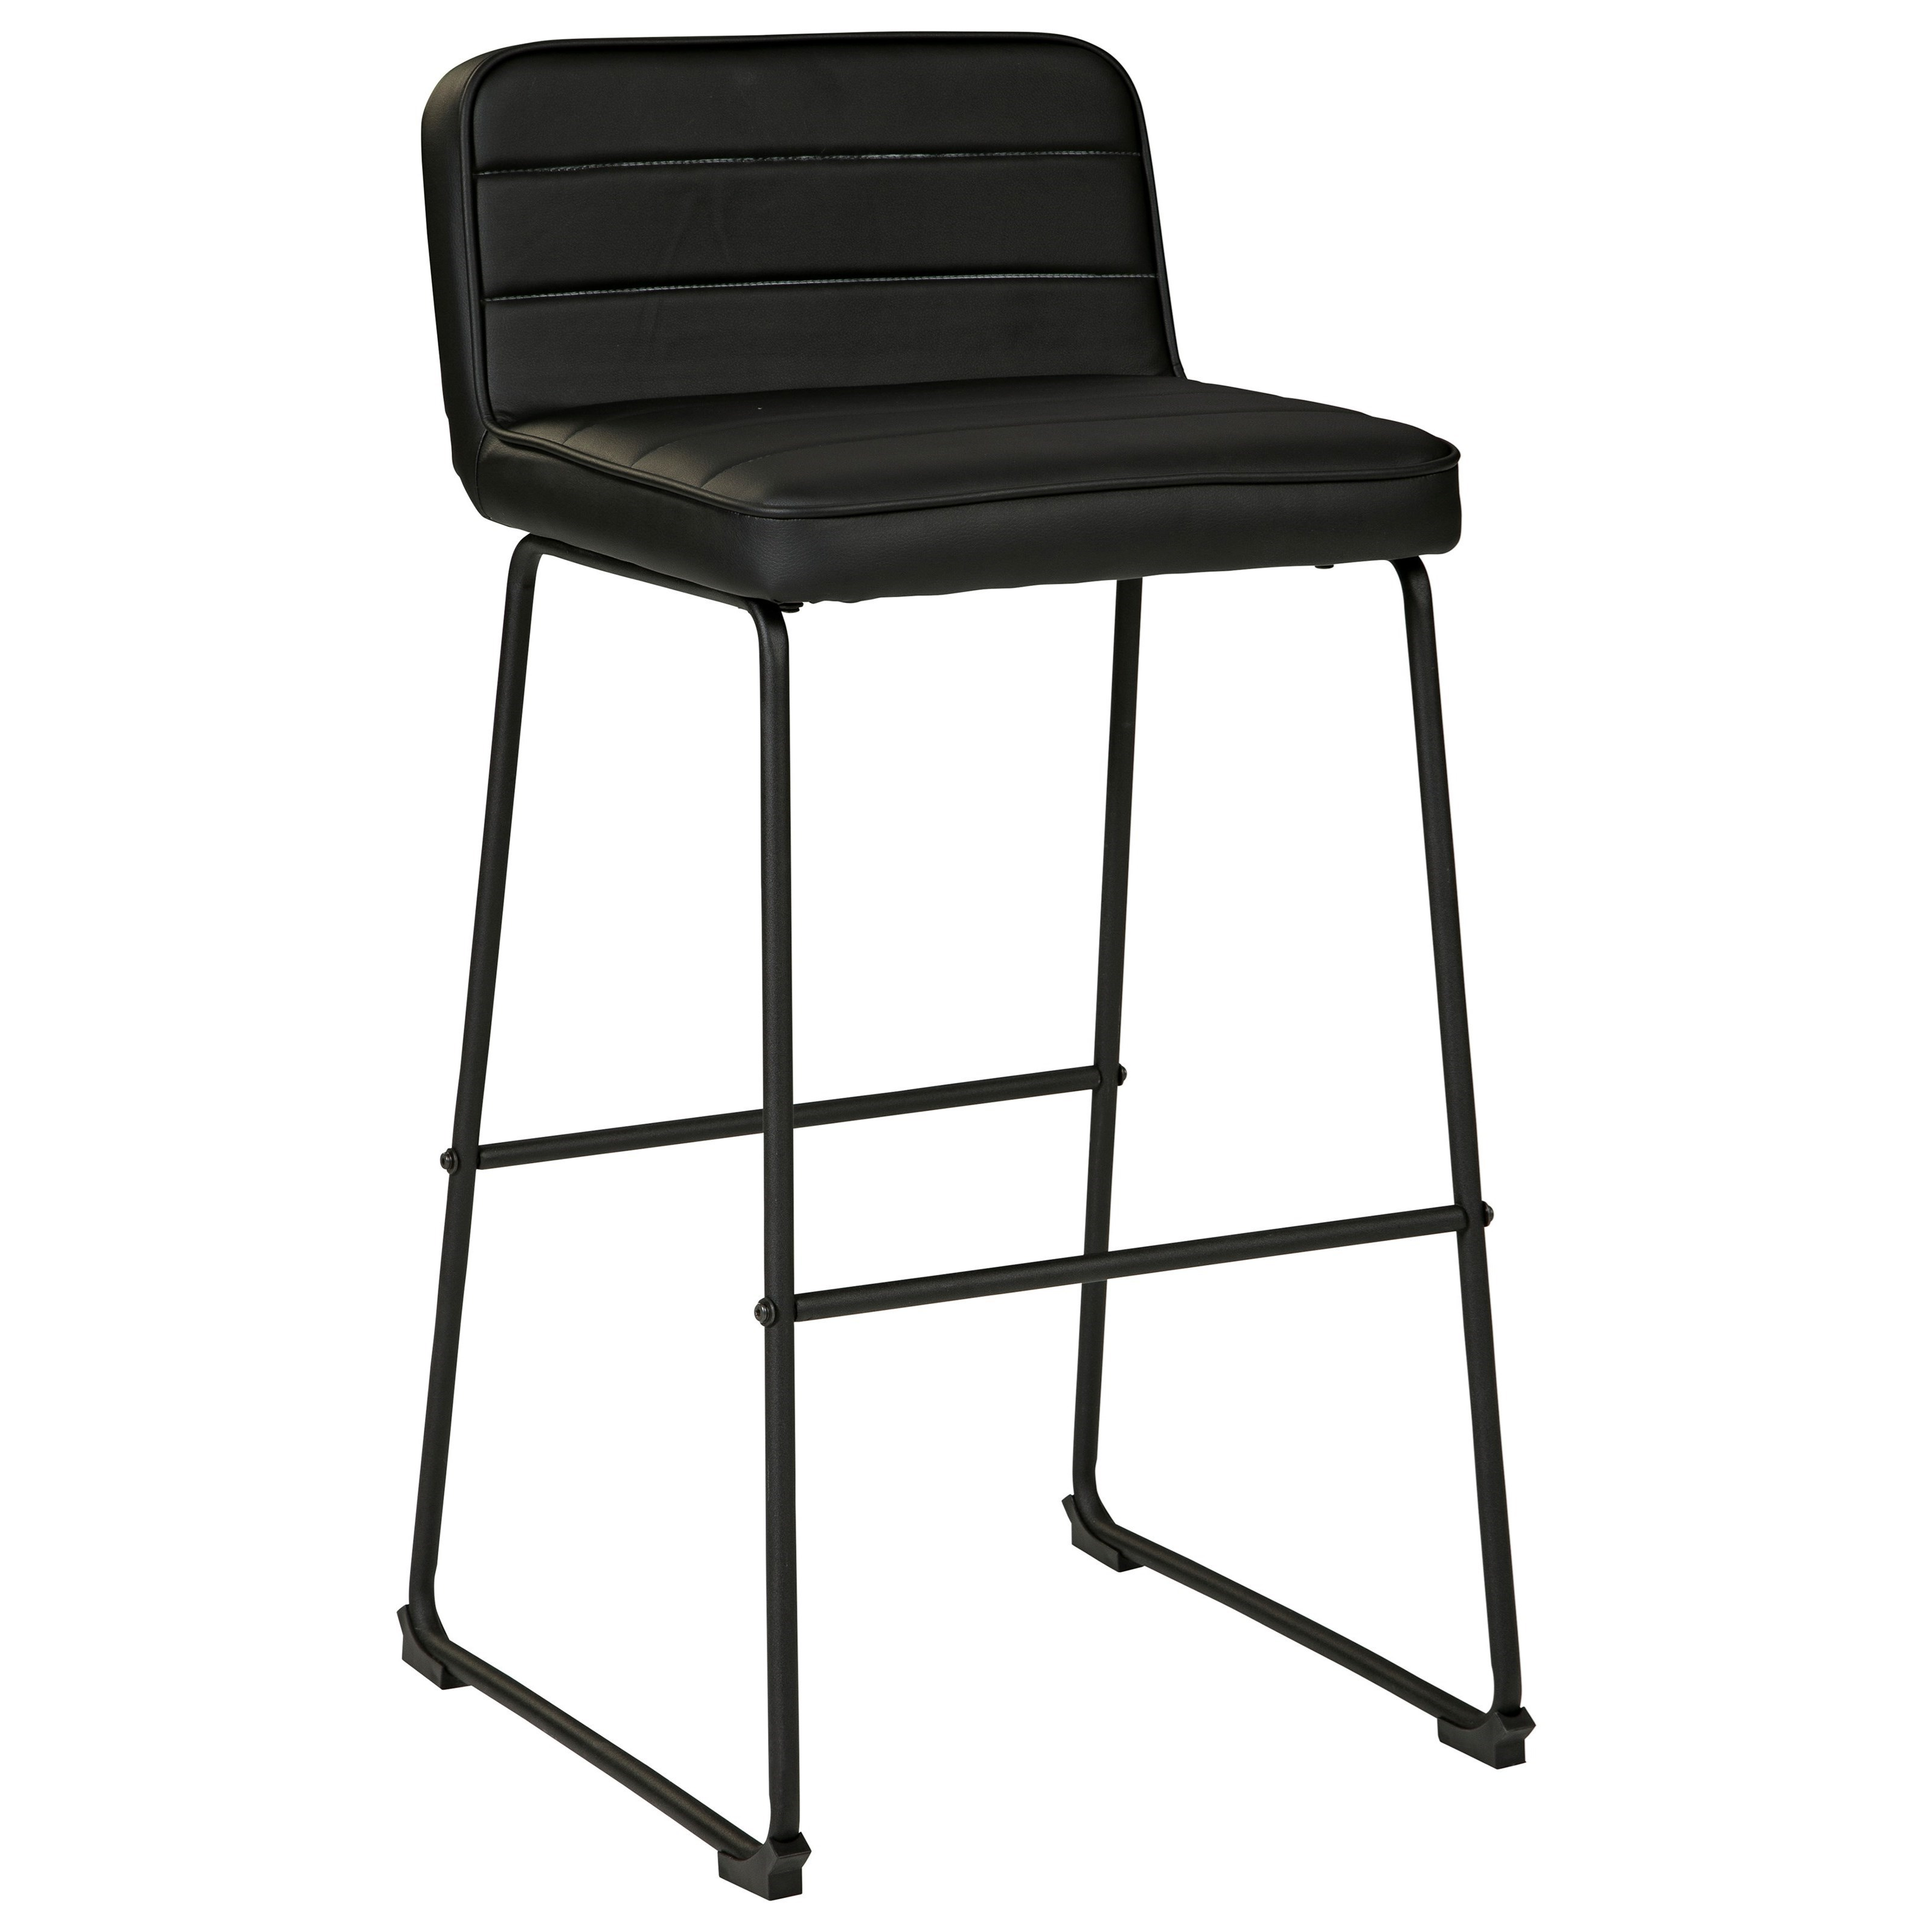 Contemporary Black Tall Bar Stool with Upholstered Seat and Back